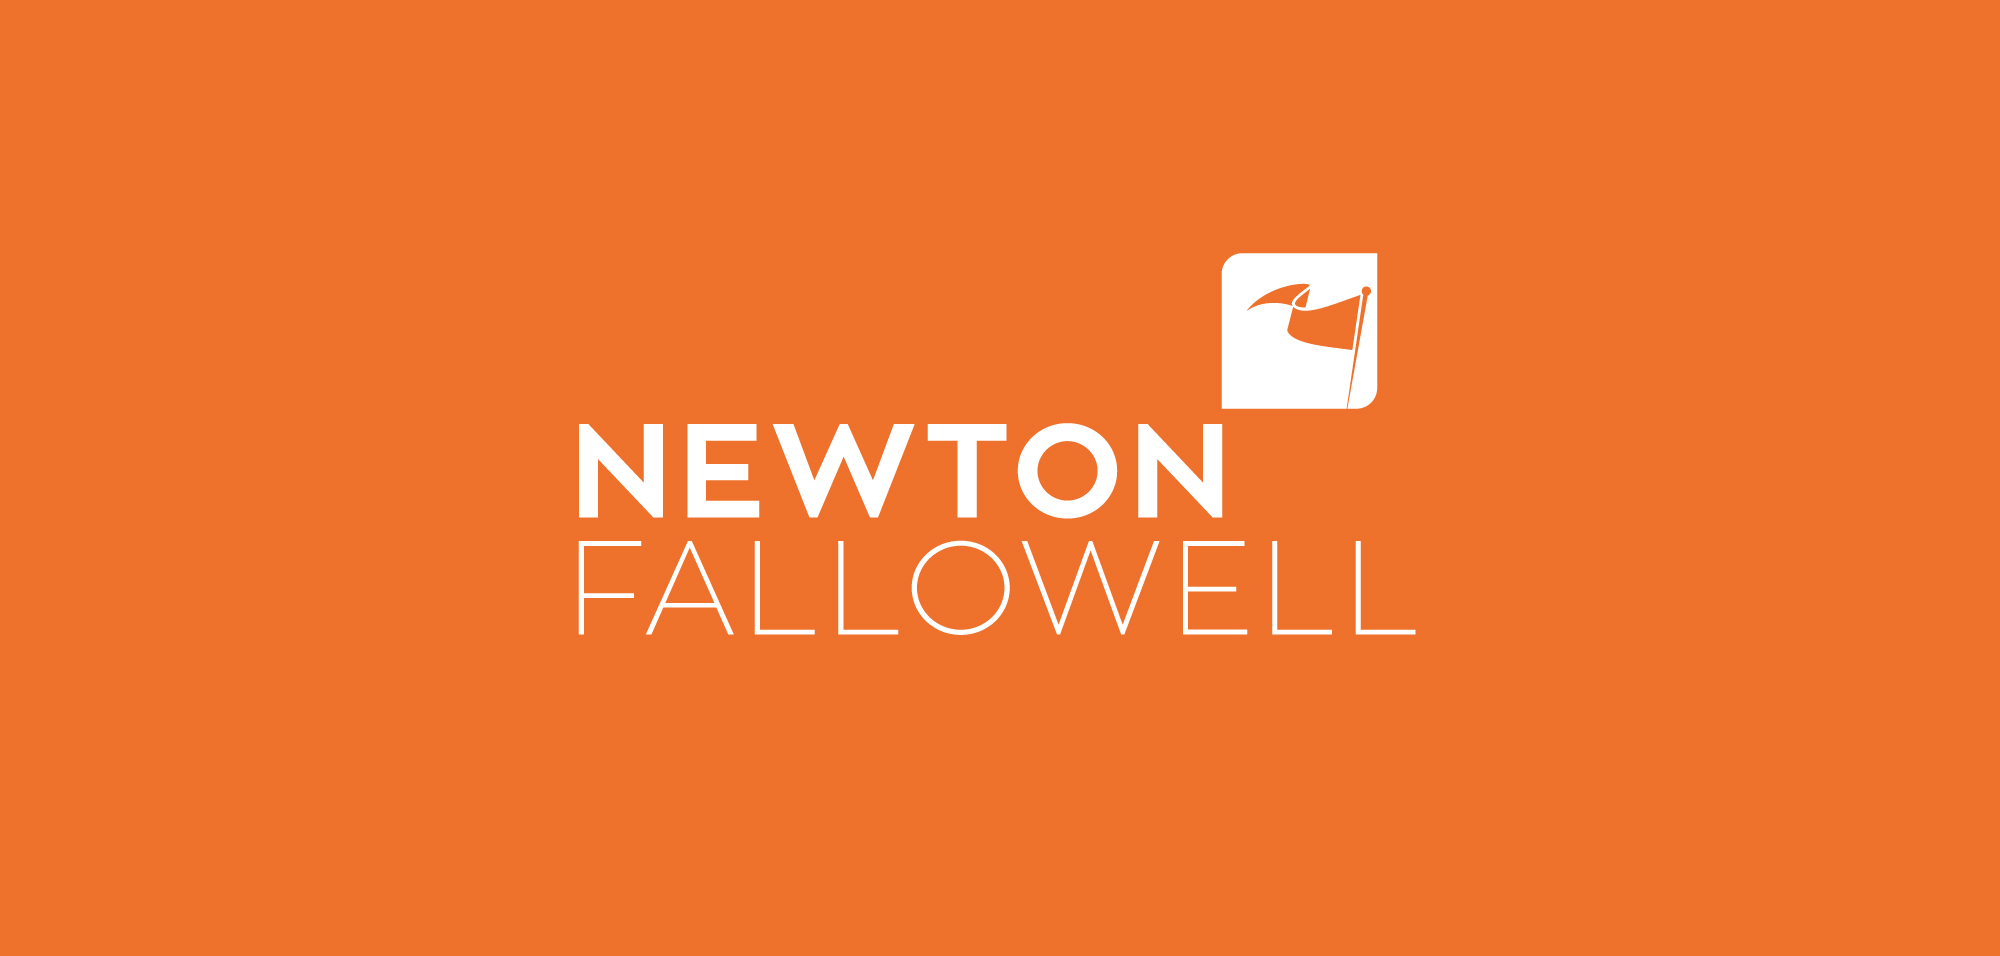 Newton Fellowell